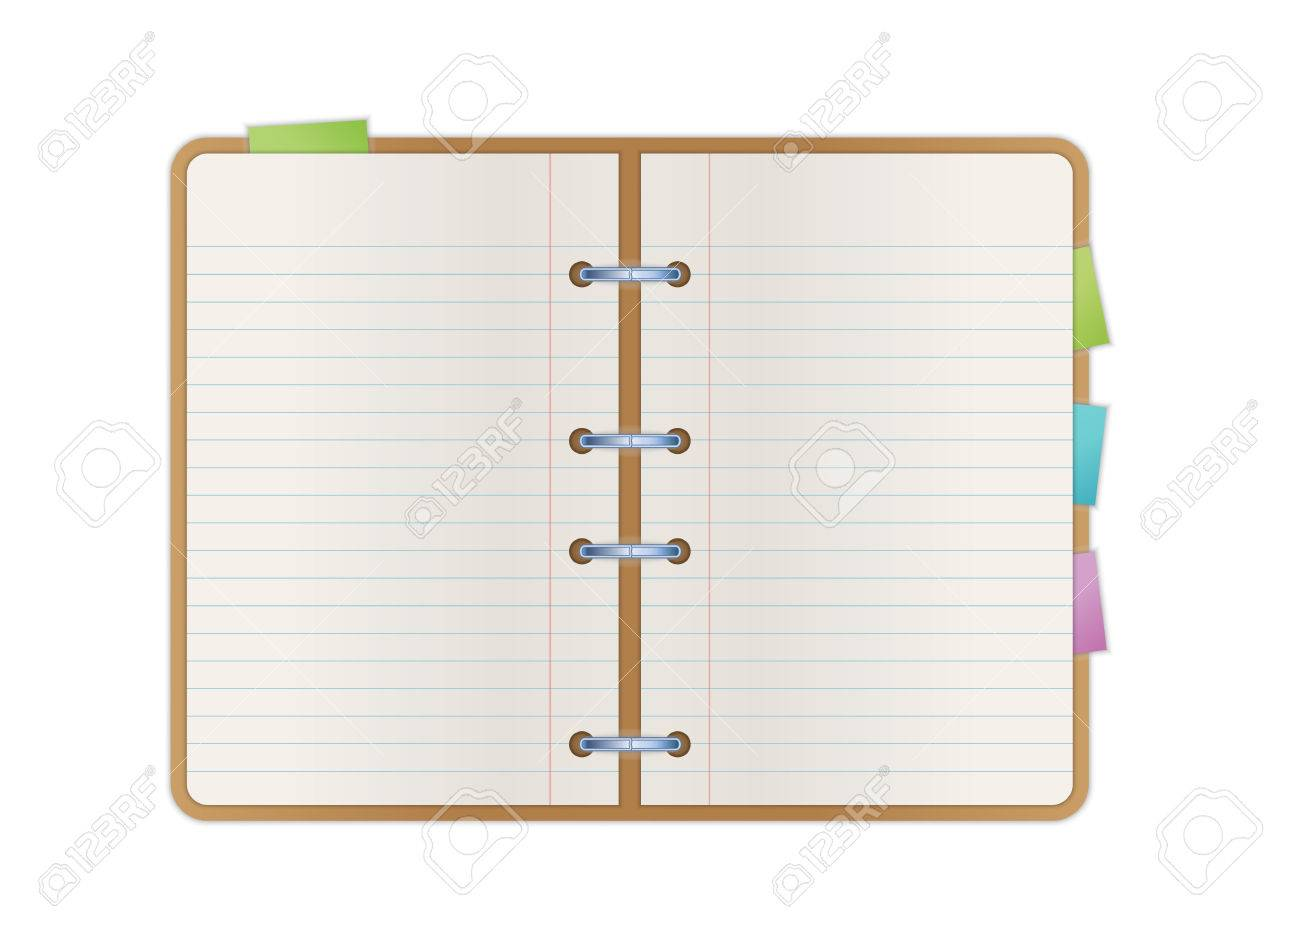 Blank pages to color on - Vector Opened Notebook With Blank Paper Pages And Color Bookmarks